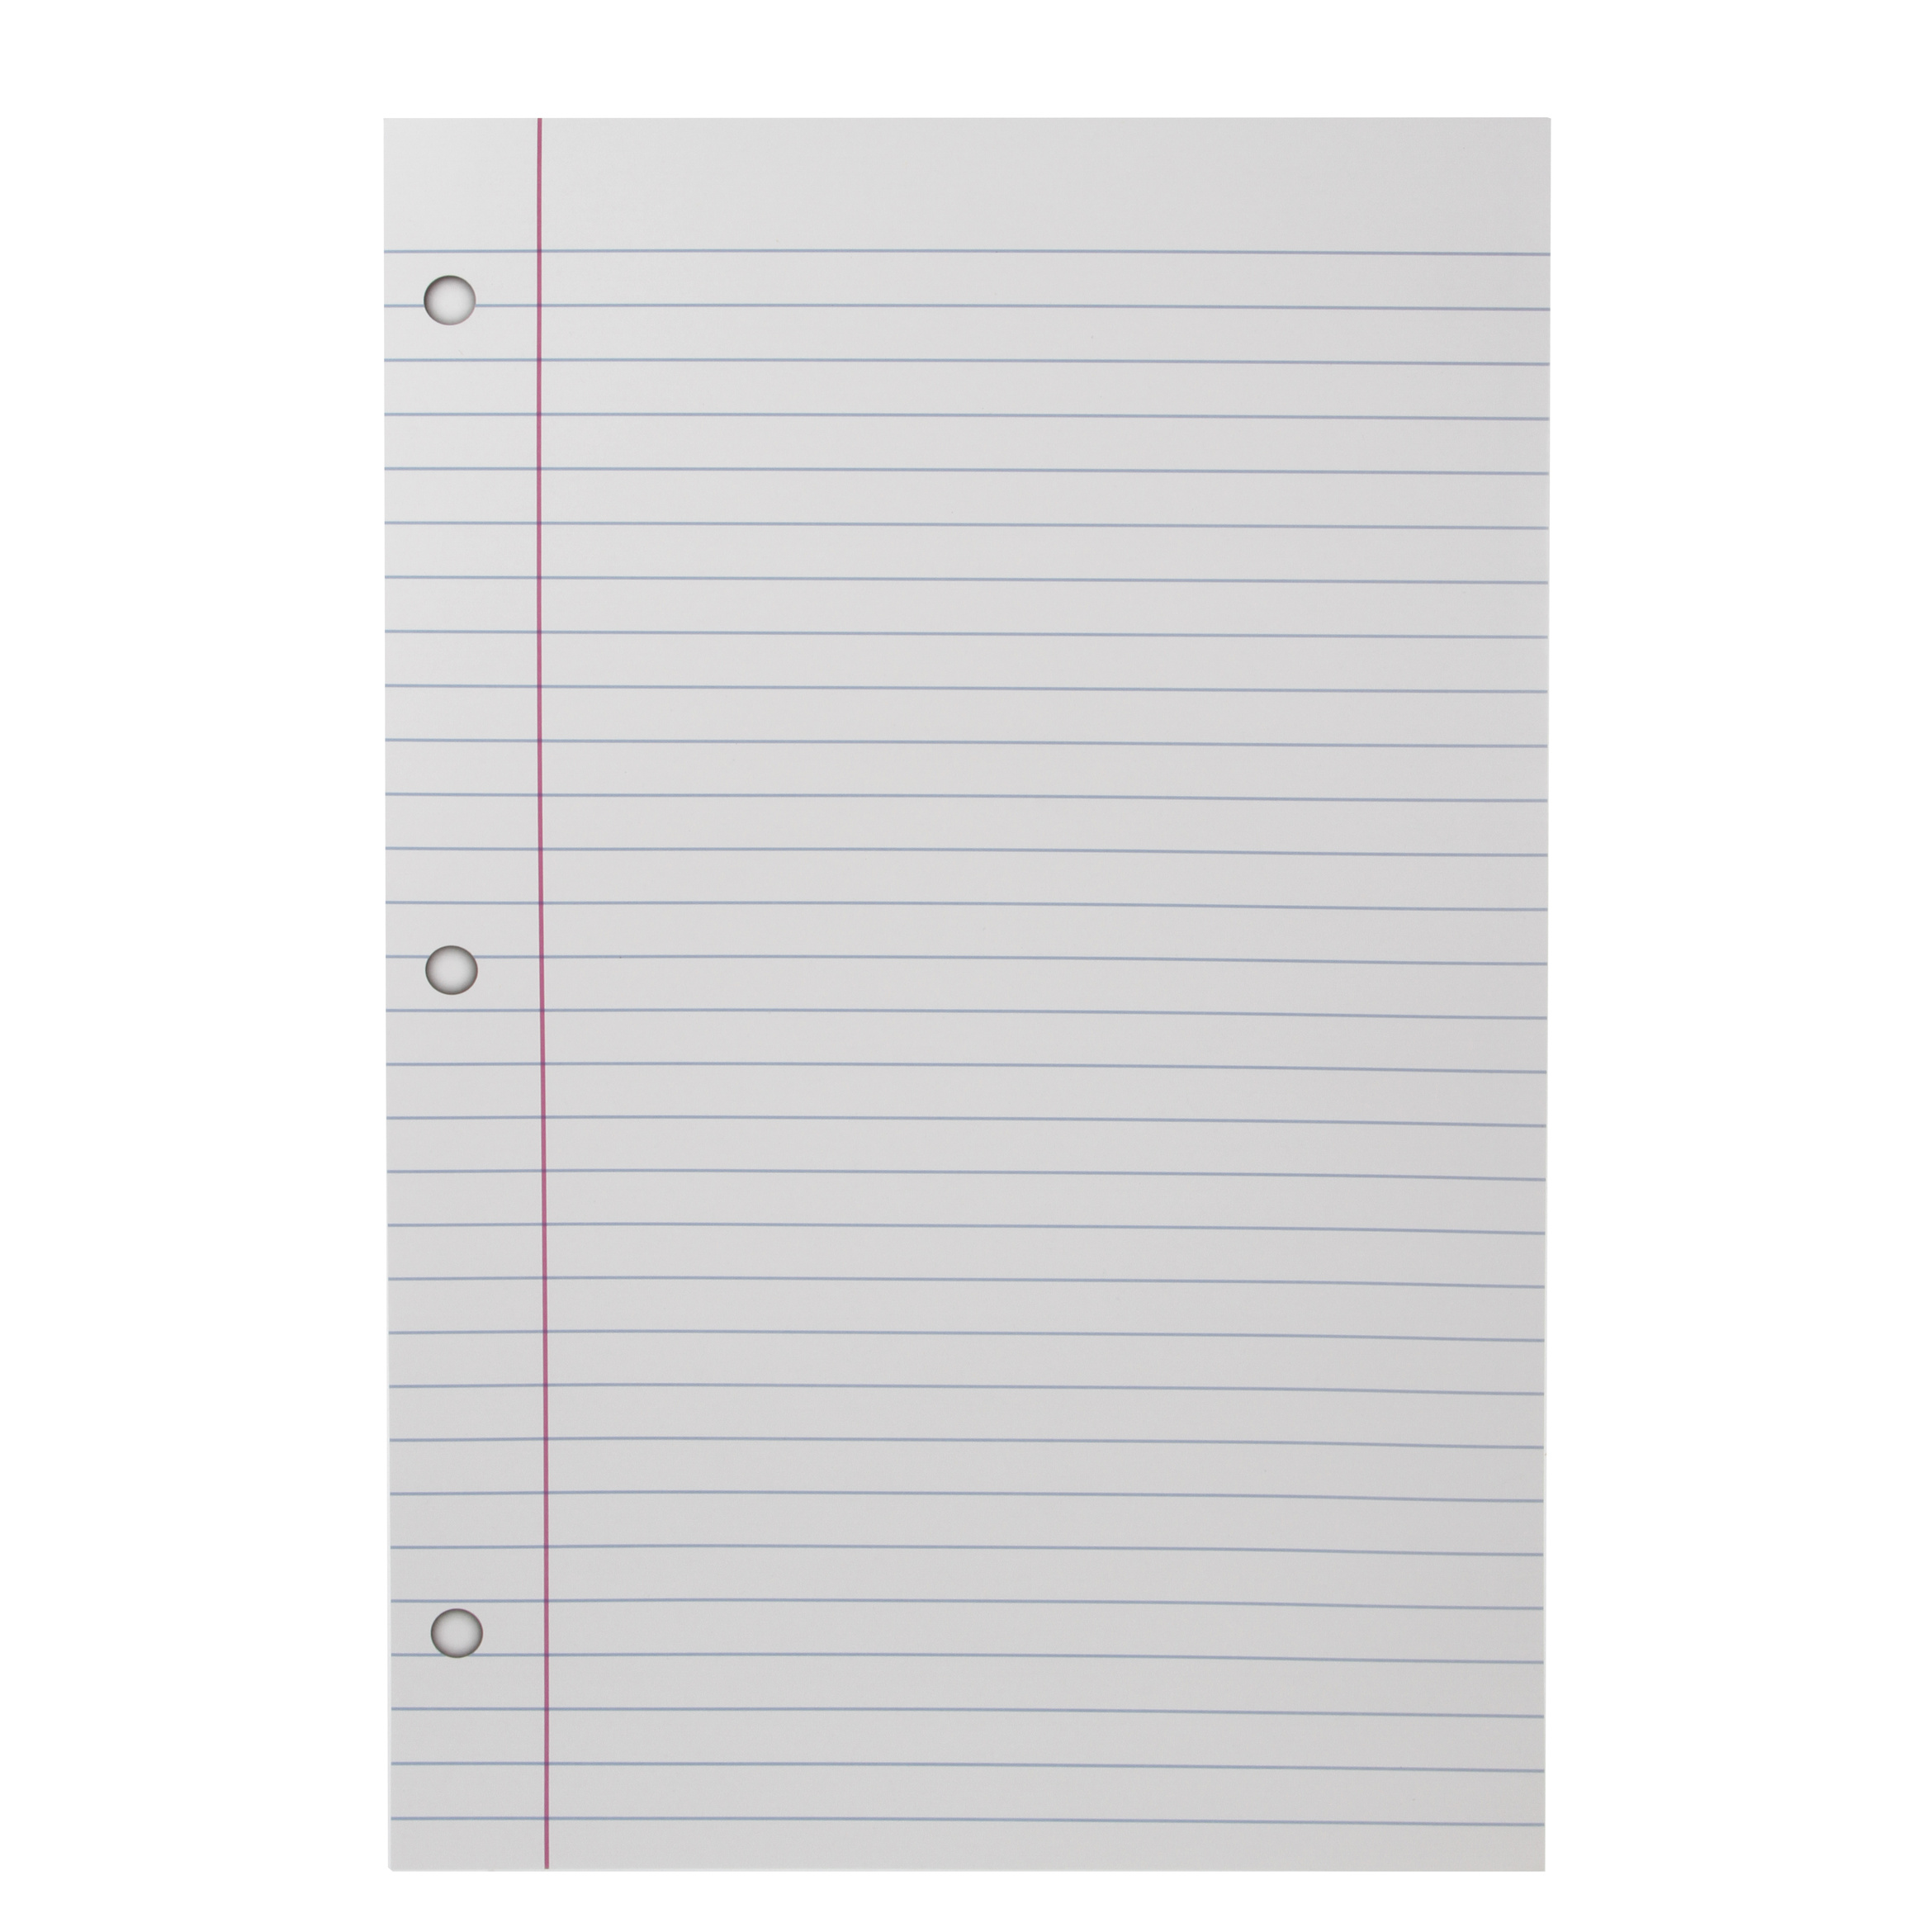 BusyKids™ Learning Small Chart Notebook Paper